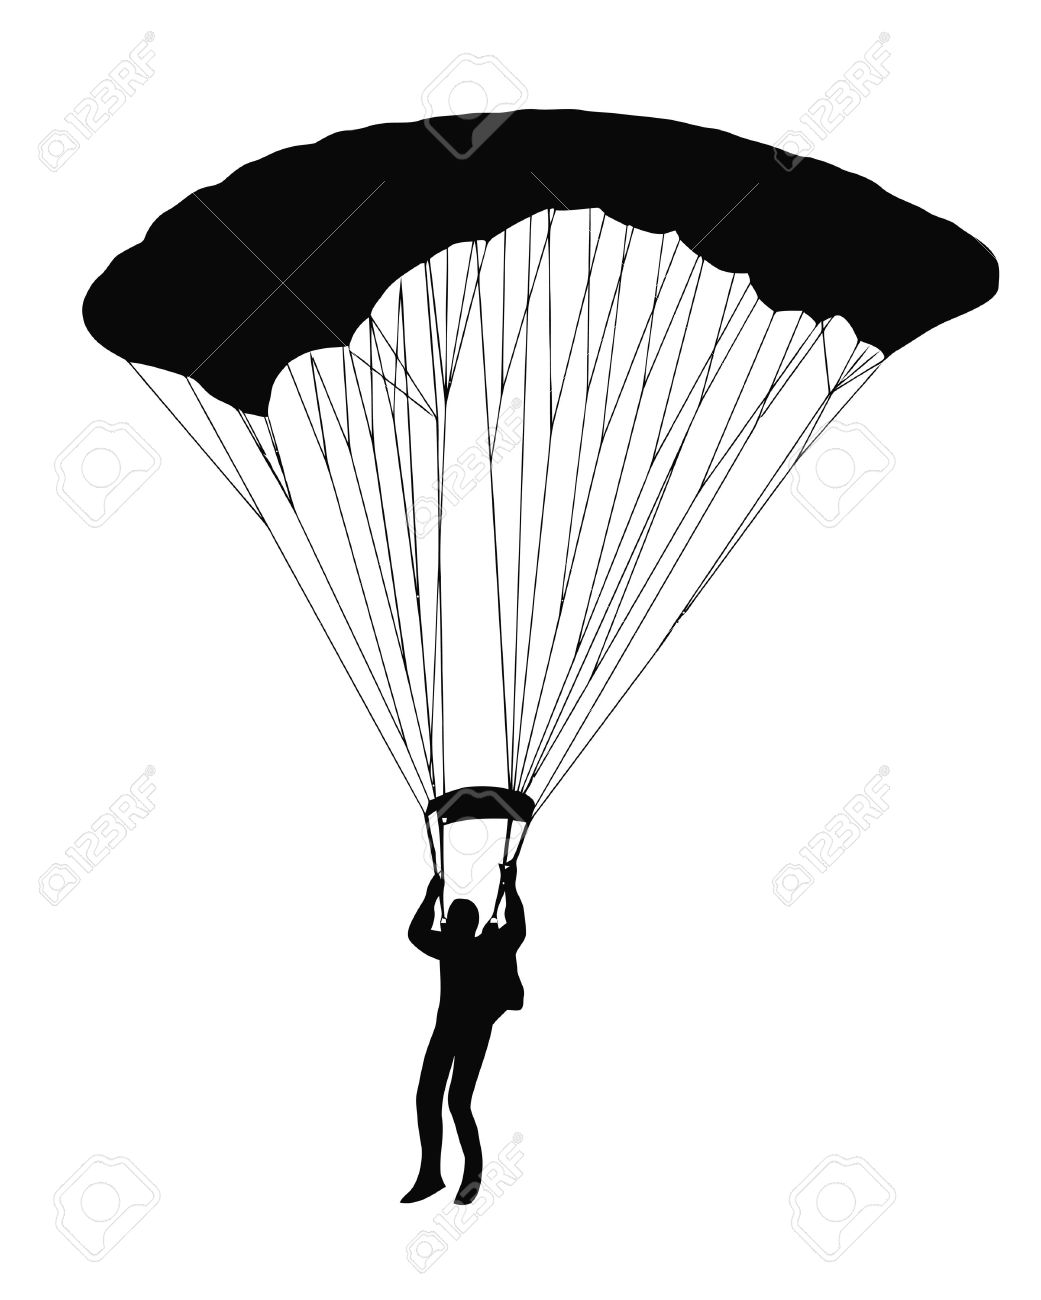 Skydiving parachute clipart